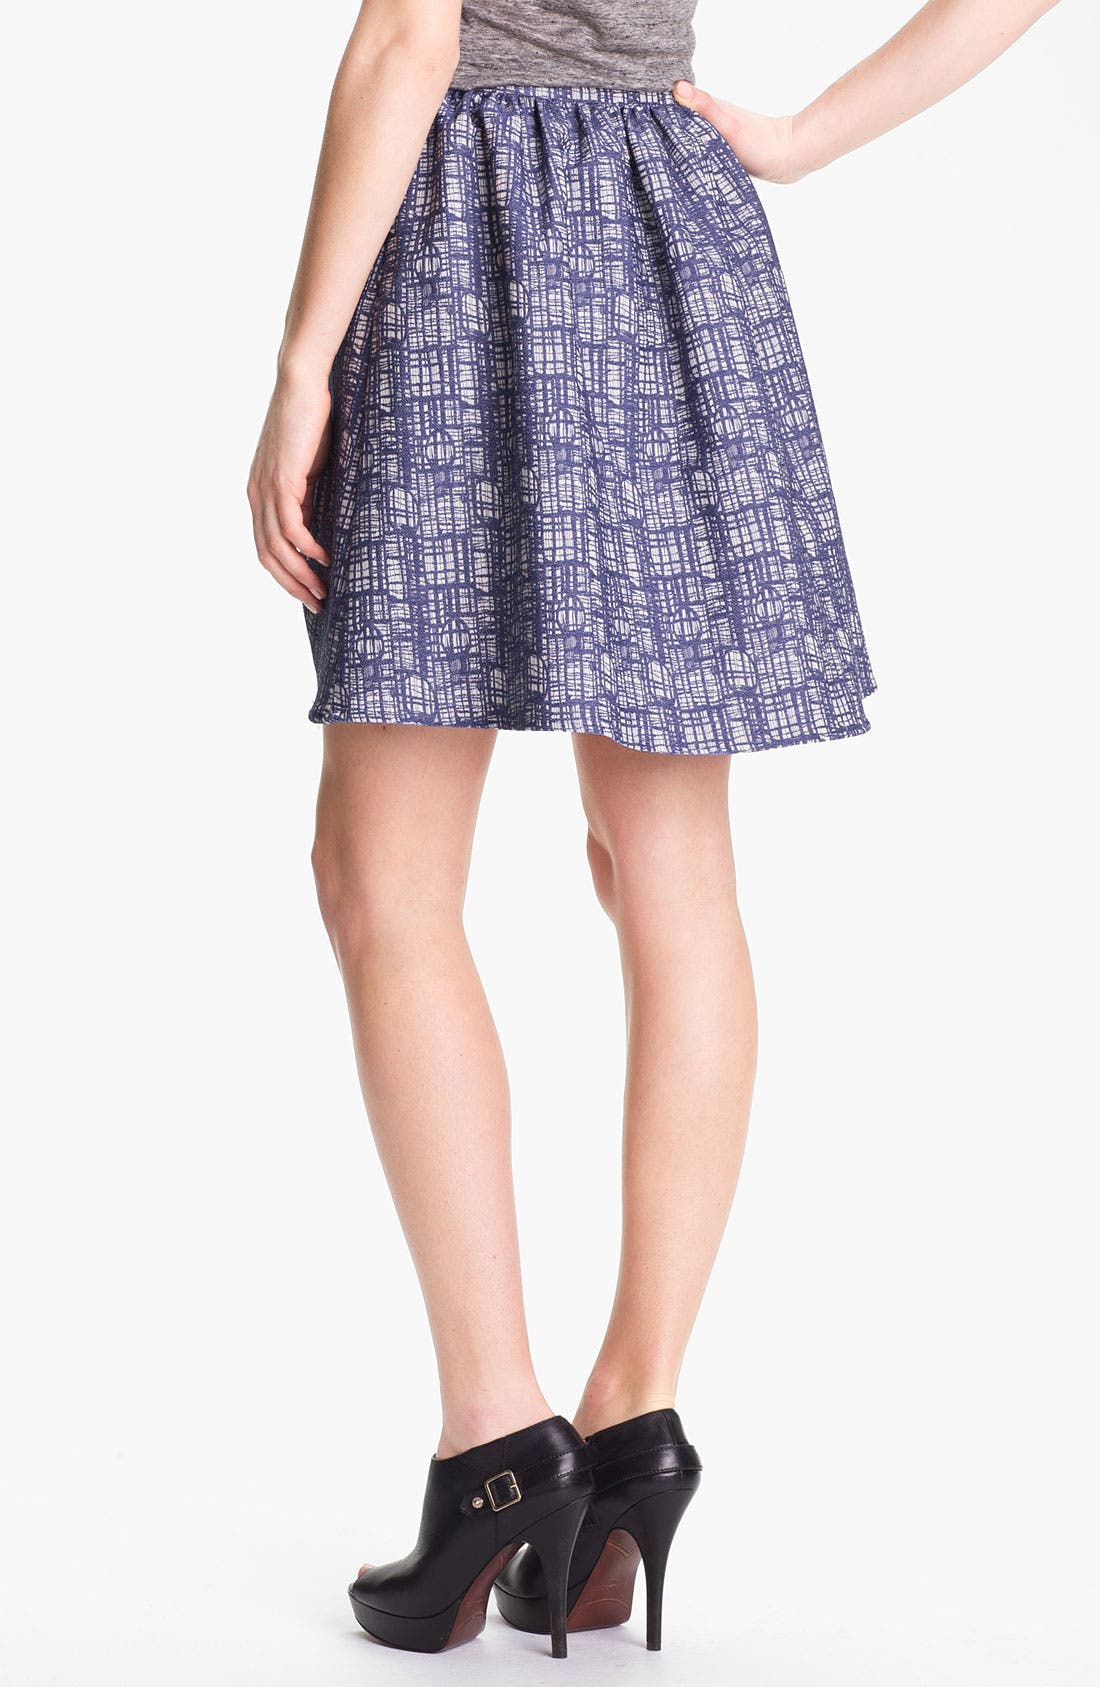 Alternate Image 2  - Man Repeller X PJK 'Wendy' Jacquard Skirt